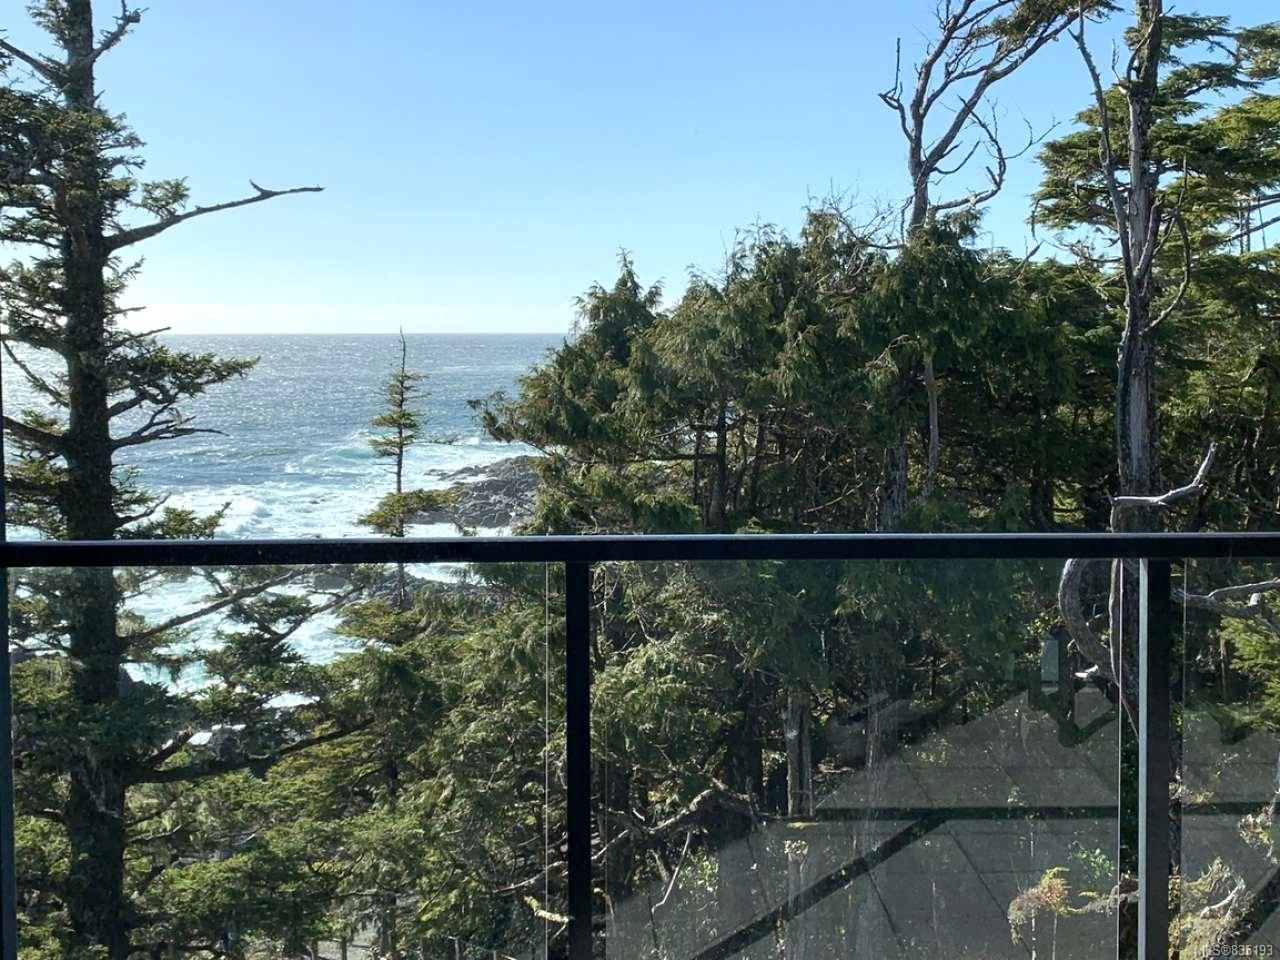 Main Photo: 416 596 Marine Dr in UCLUELET: PA Ucluelet Condo for sale (Port Alberni)  : MLS®# 835193